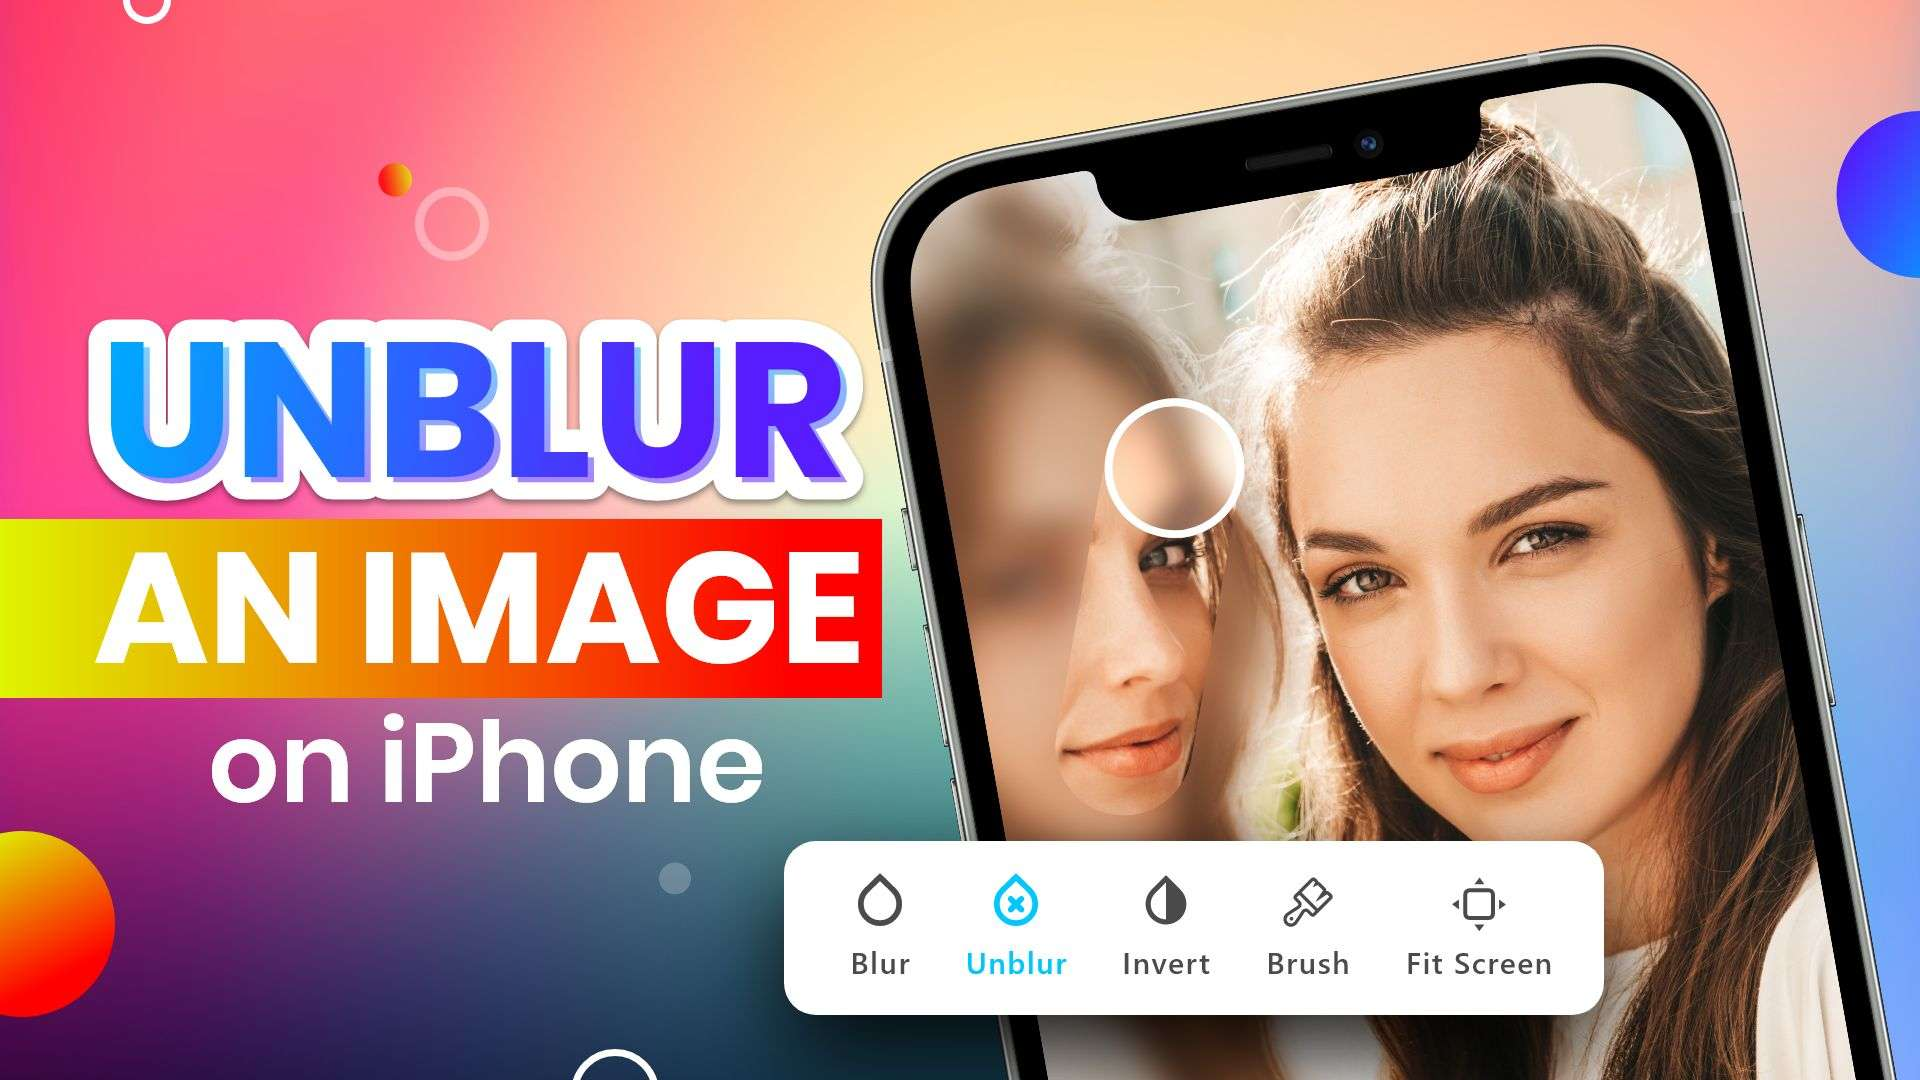 how to unblur an image on iPhone